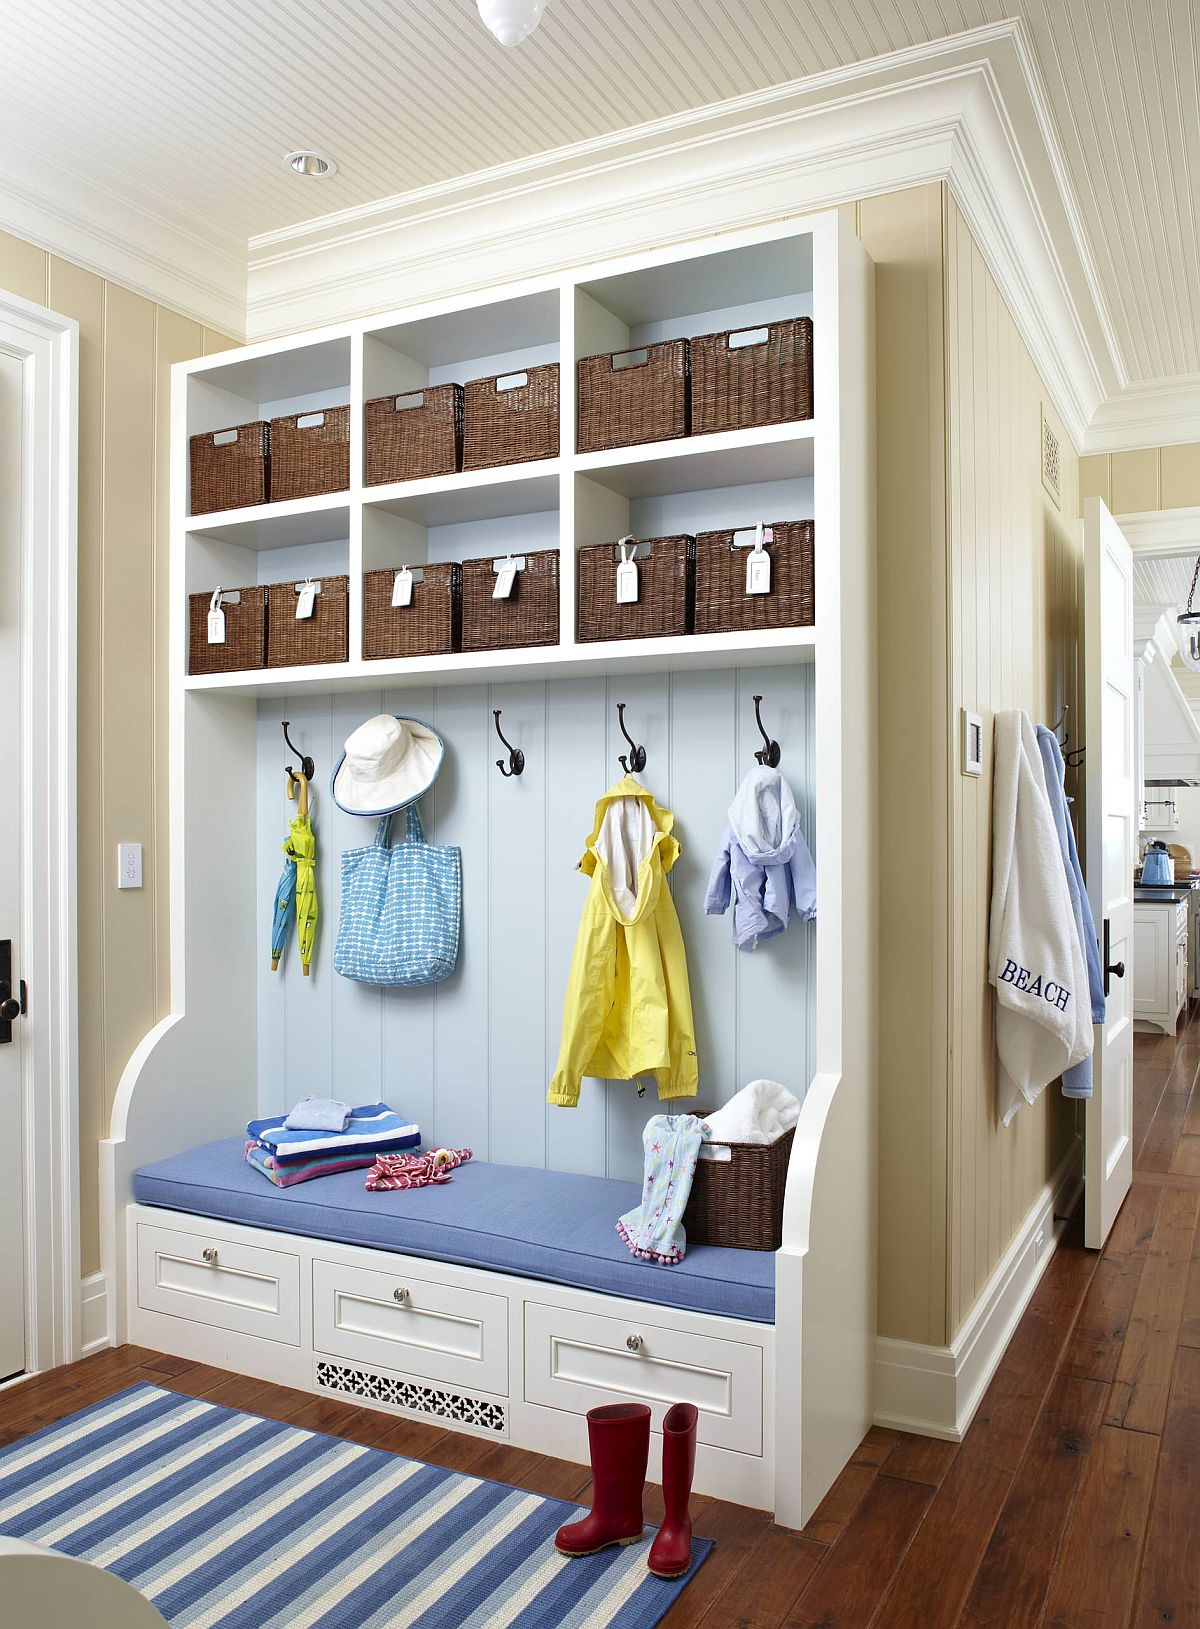 Find a mudroom setup that fits with the specific spatial needs of your home